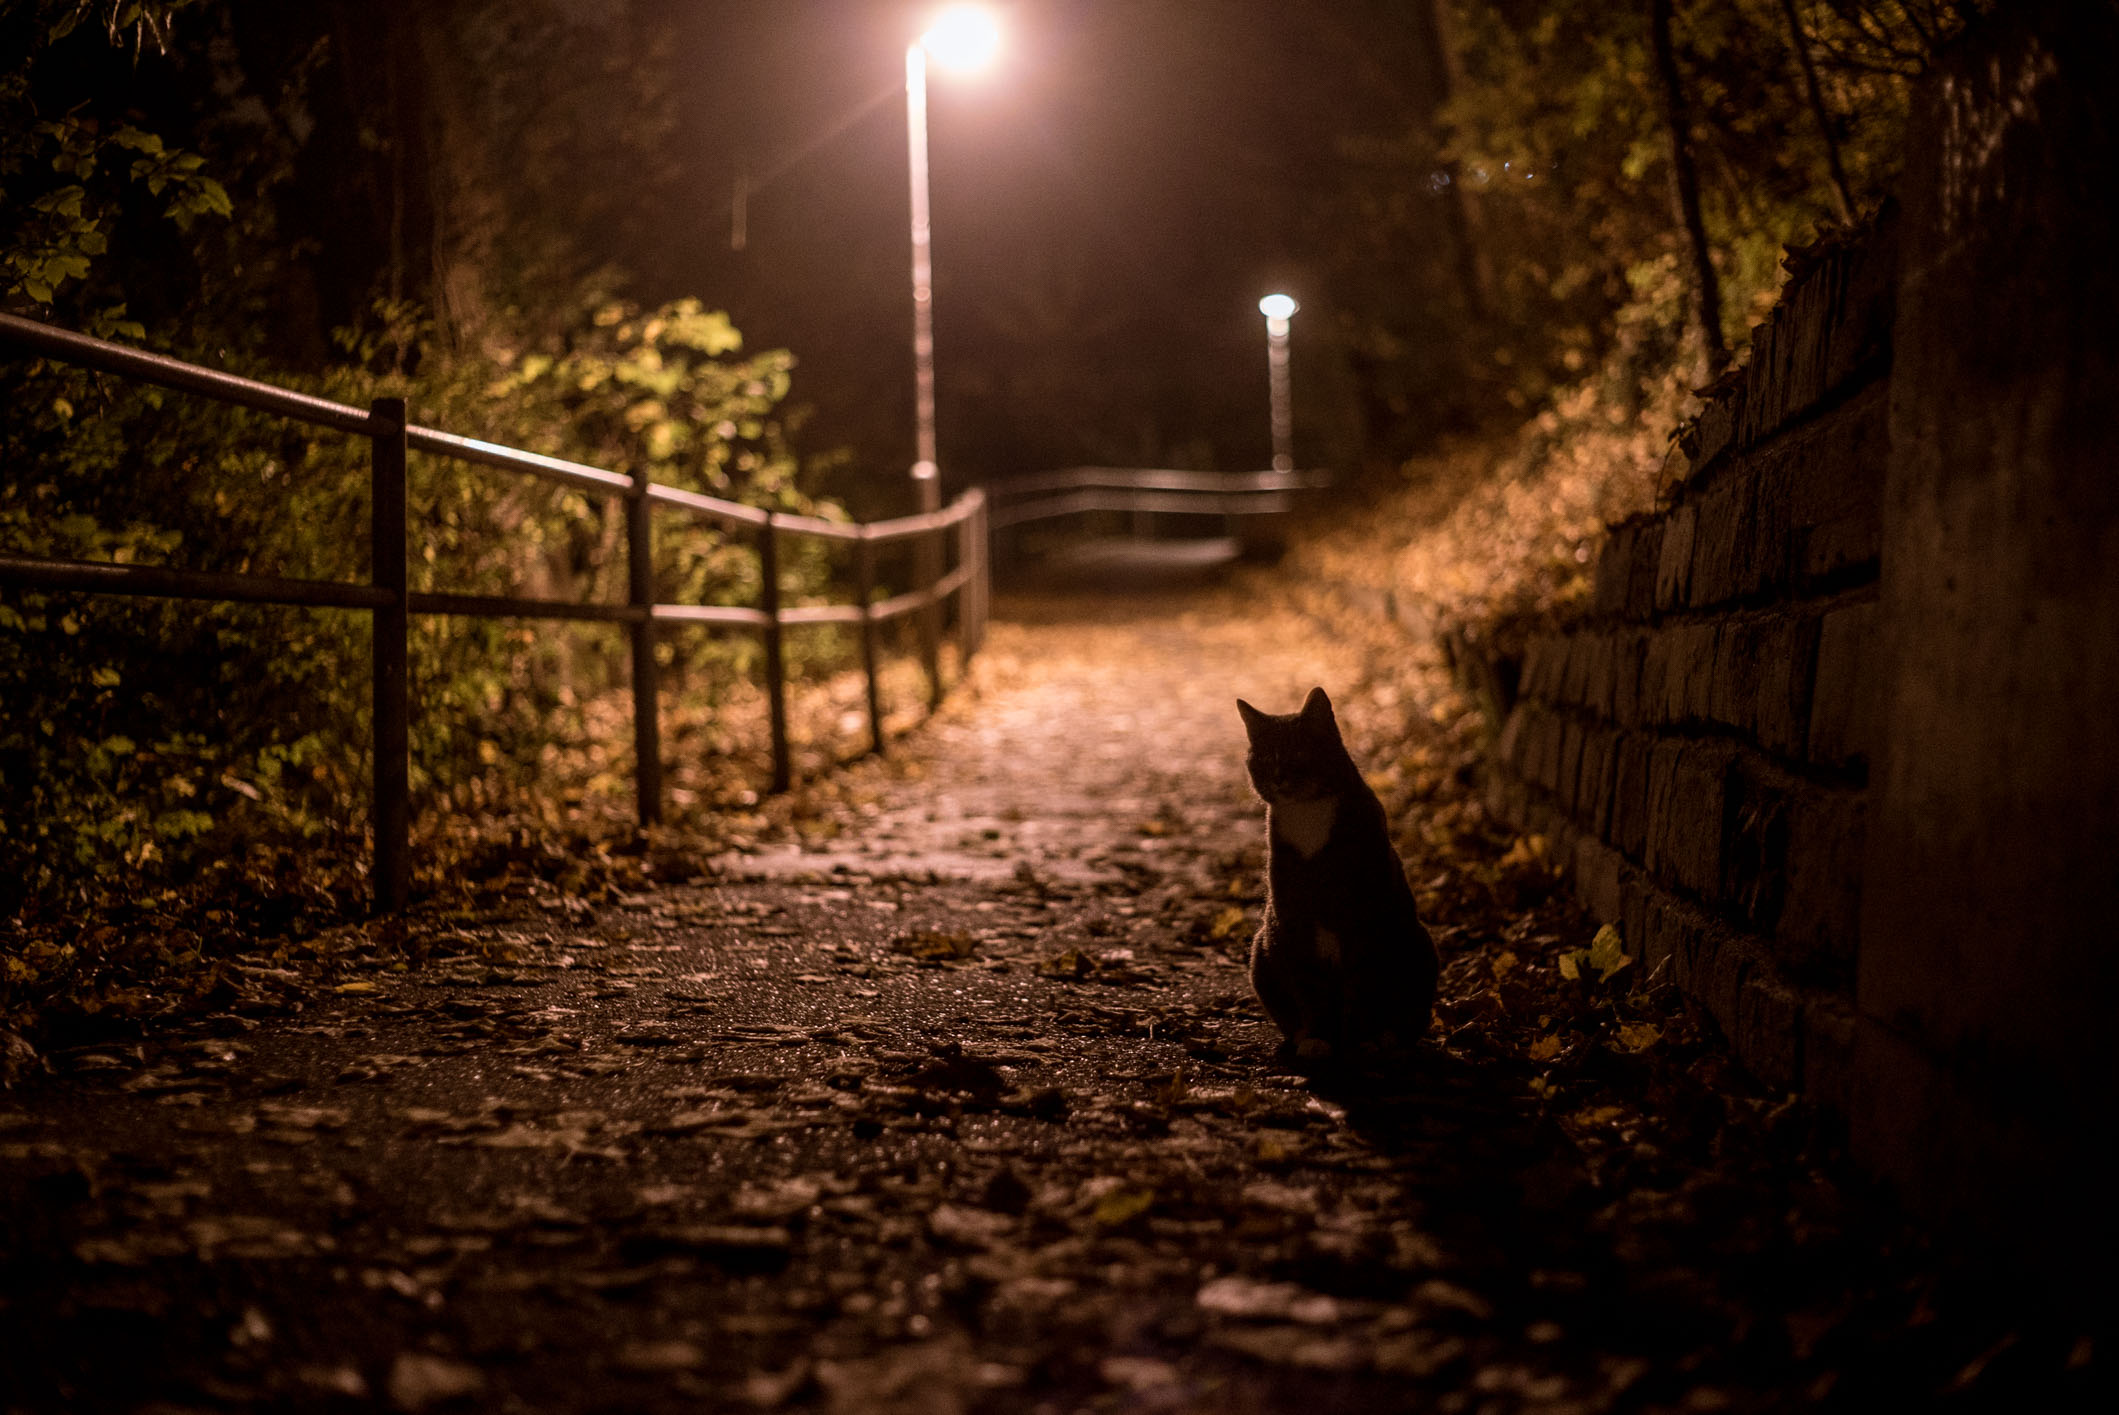 This cat followed me for at least 300 metres, but it took me a while to get it to stop in the right place for this picture